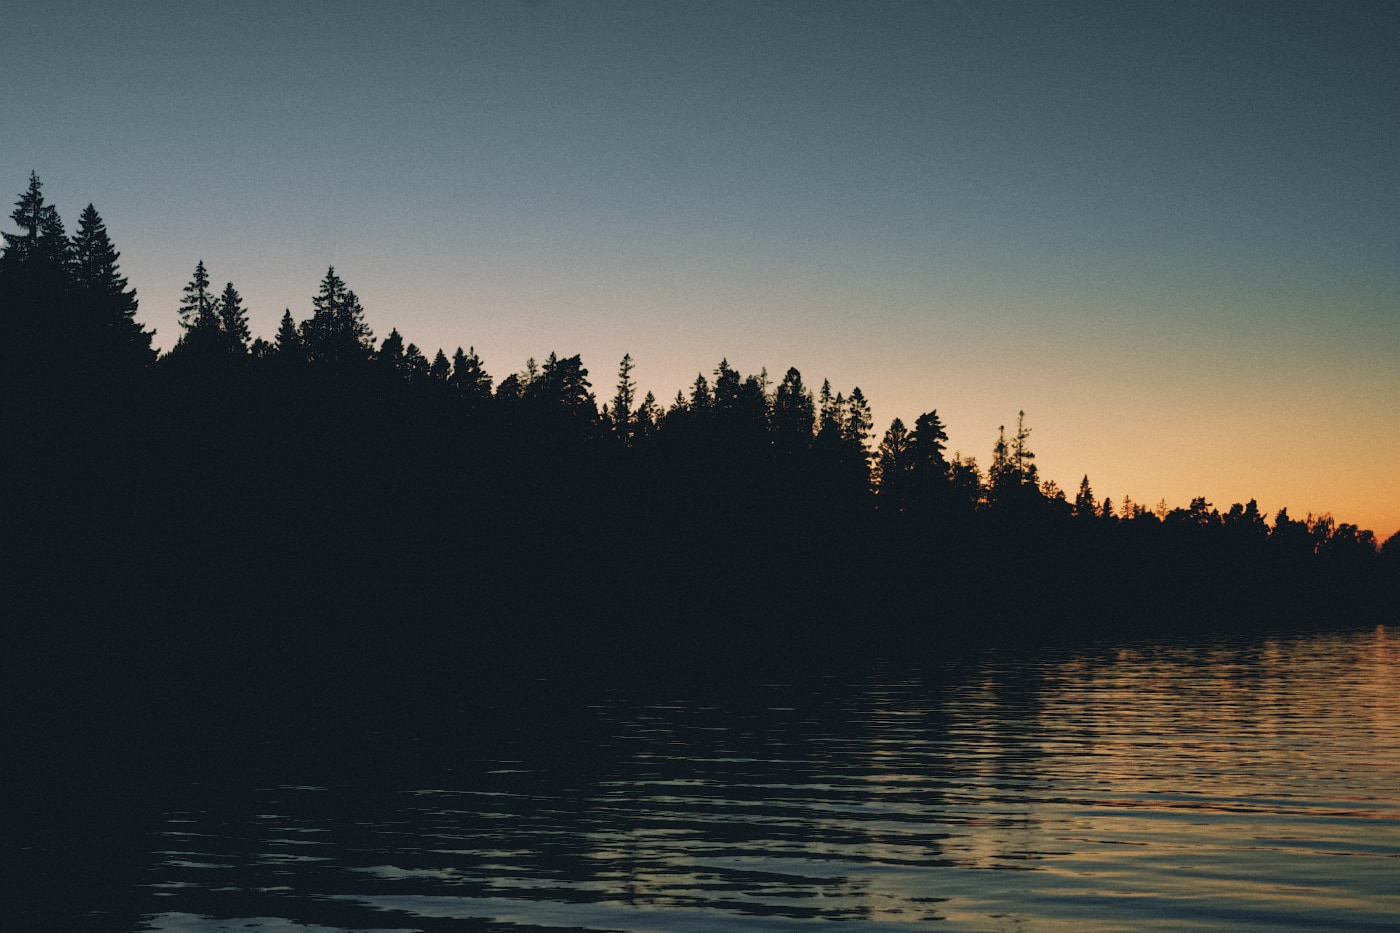 Silhouettes of trees during sundown. Calm water in the foreground. The sky is a gradient from charcoal to copper.